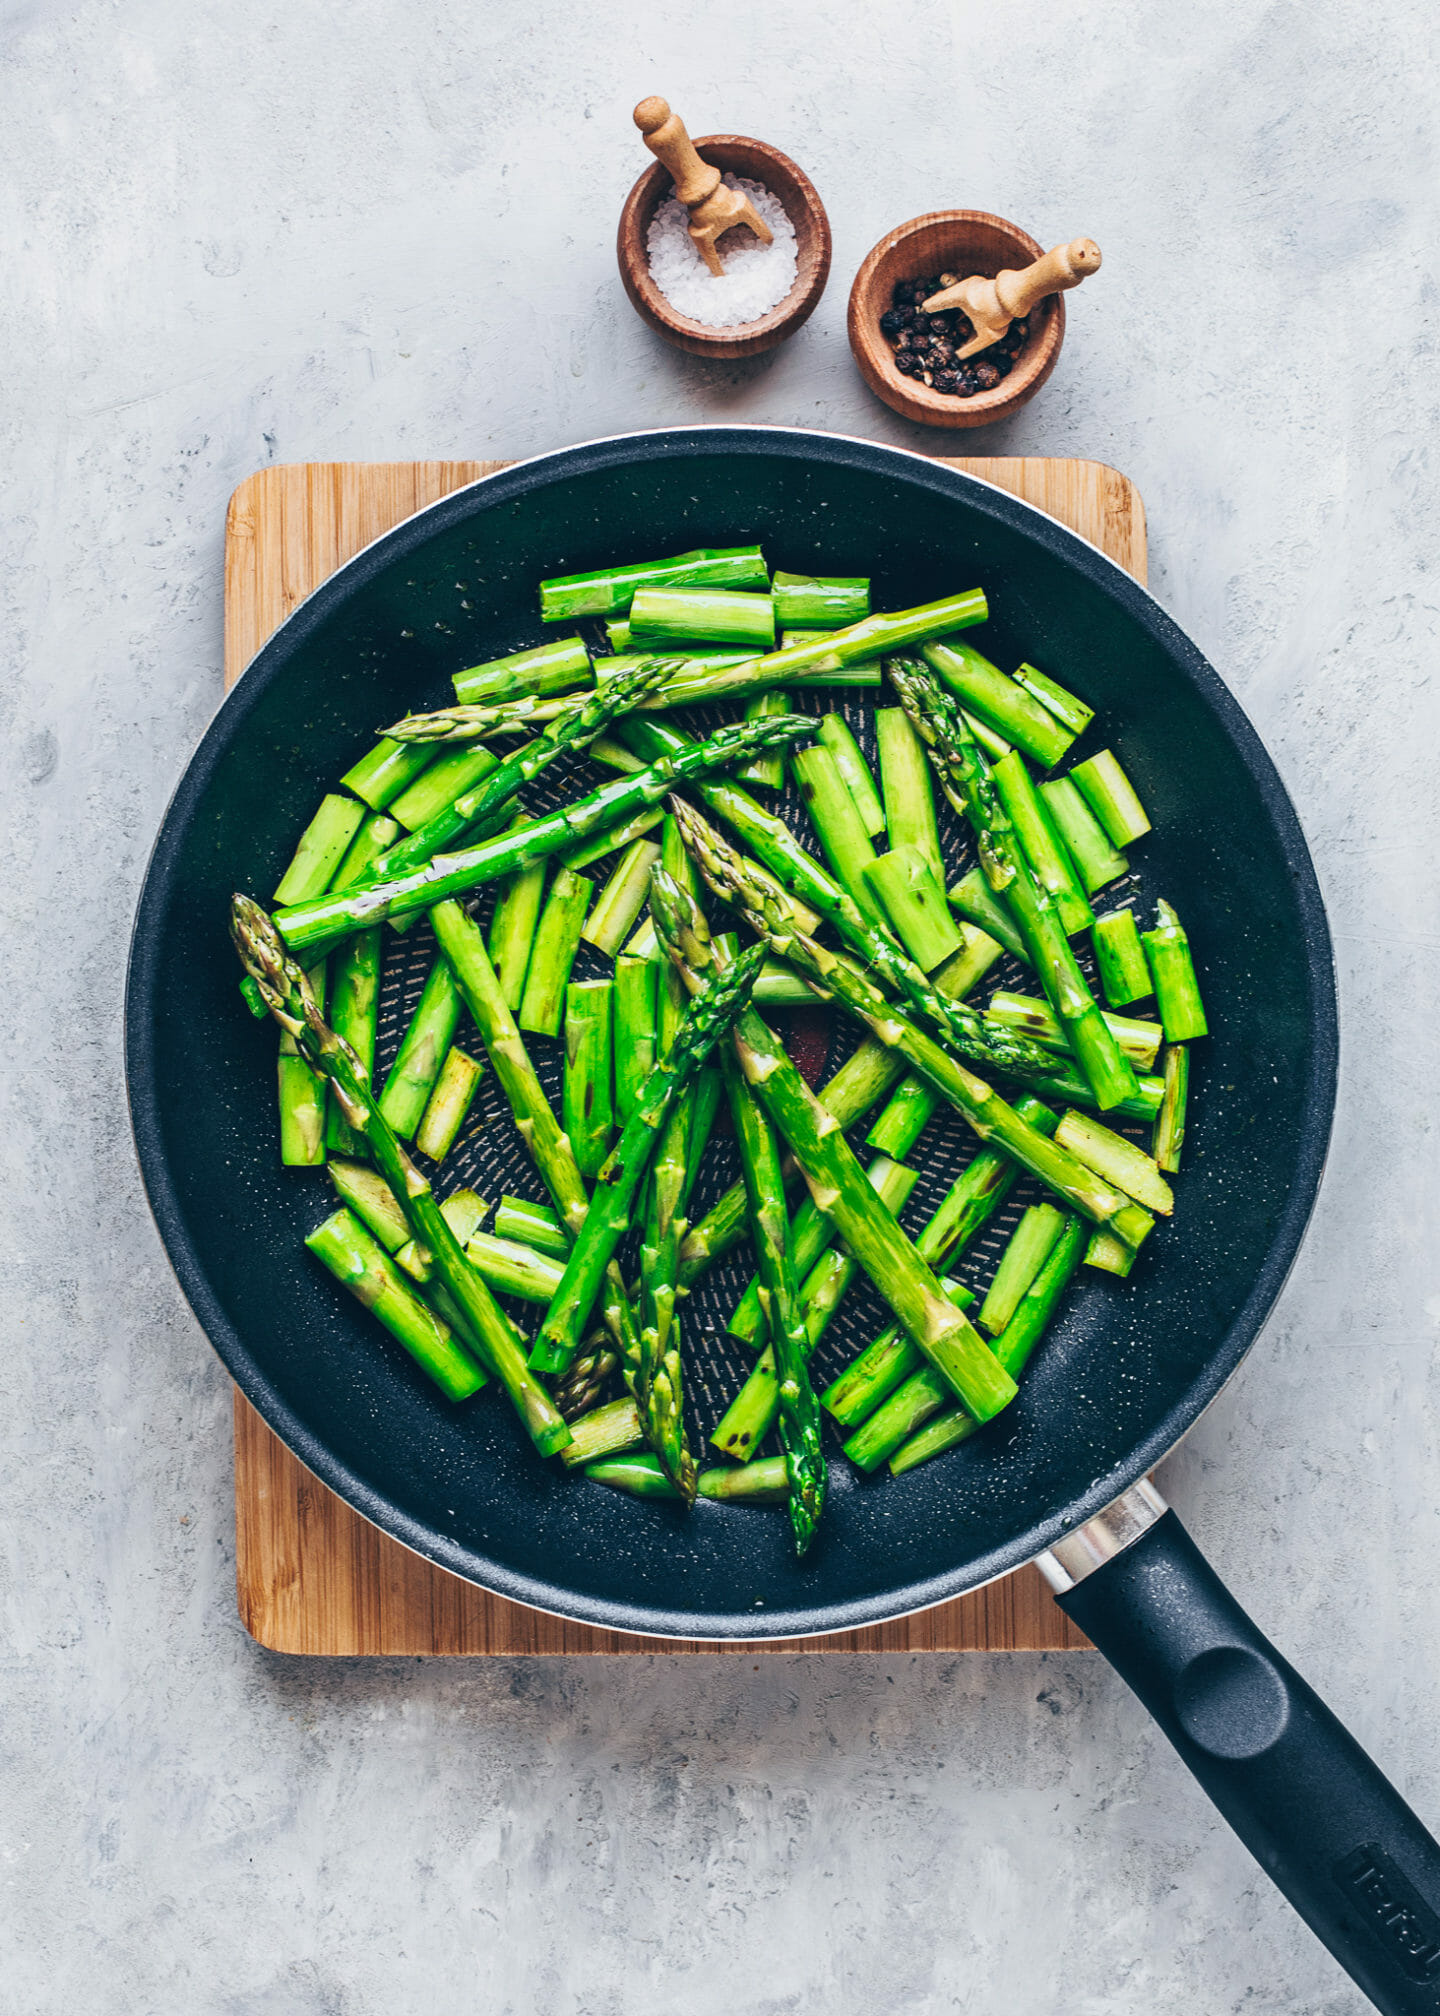 sautéed green asparagus in a pan